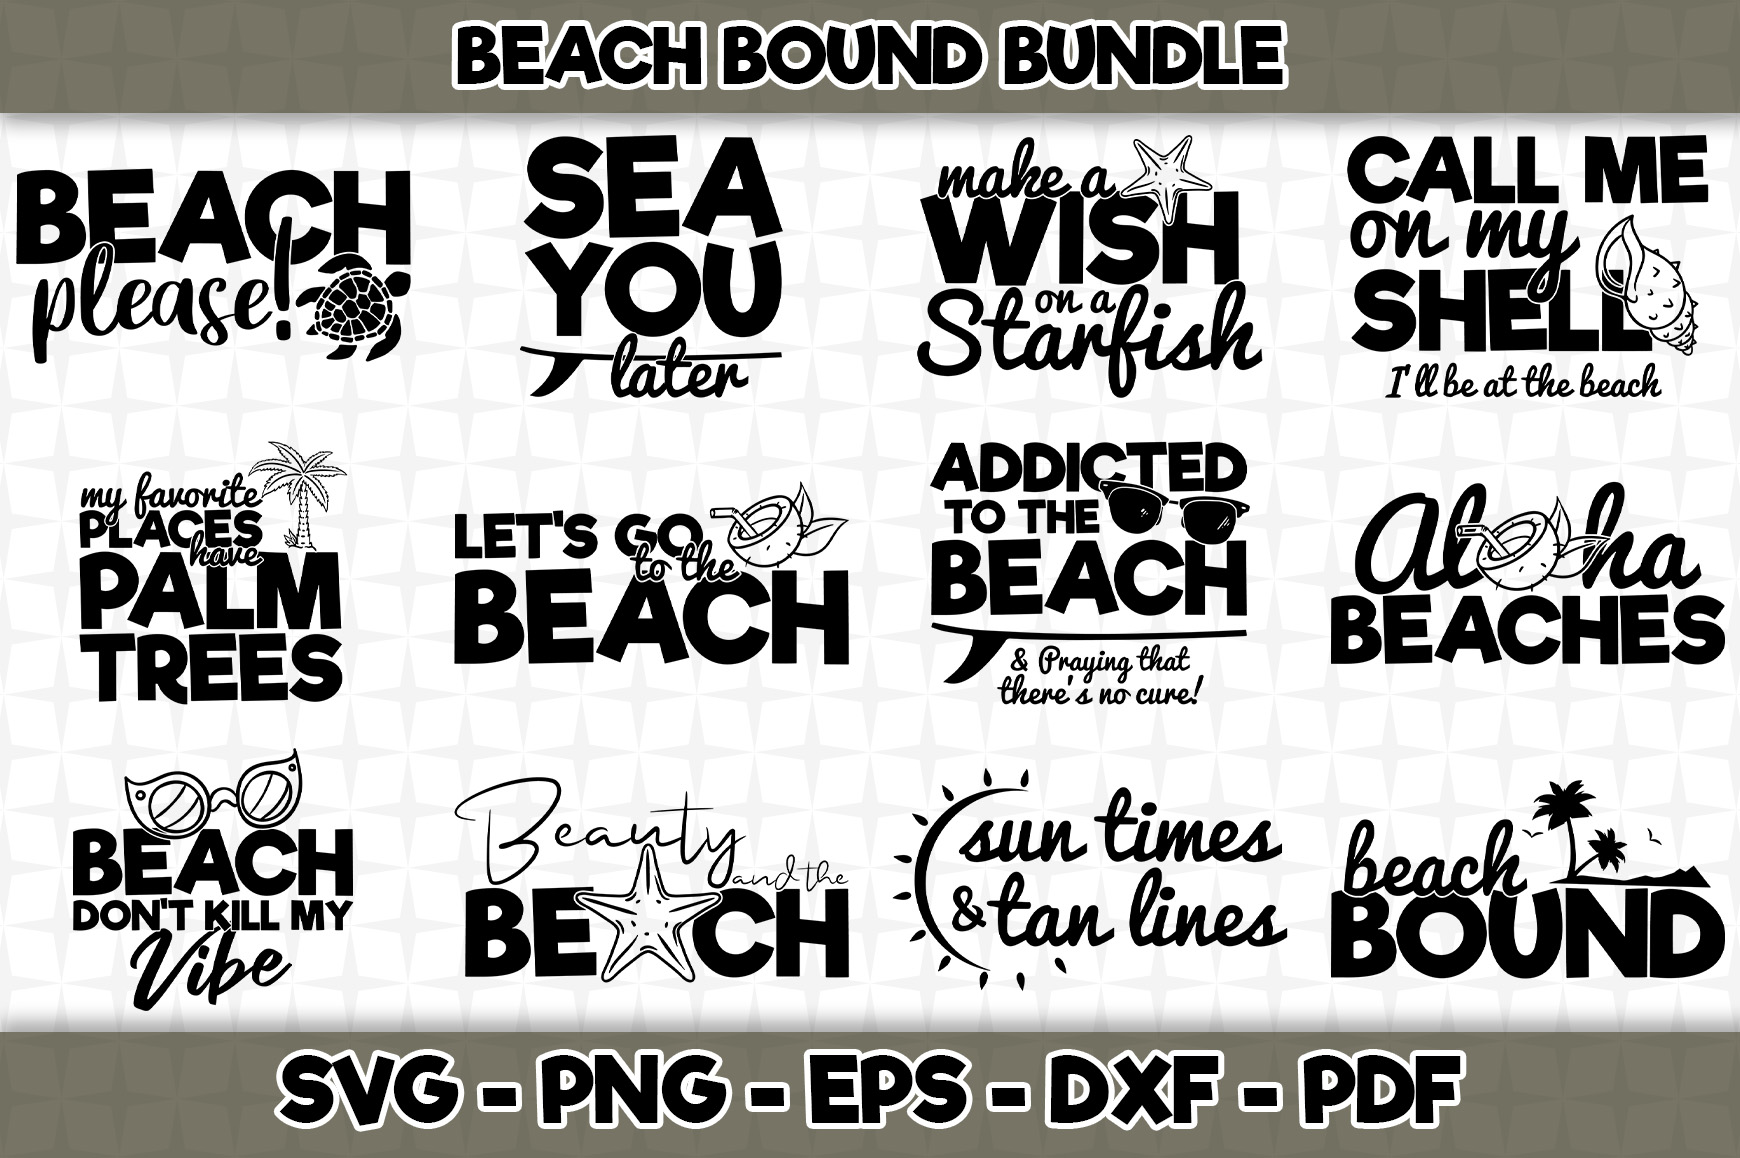 Download Free Beach Bound Bundle 12 Designs Included Graphic By Svgexpress for Cricut Explore, Silhouette and other cutting machines.